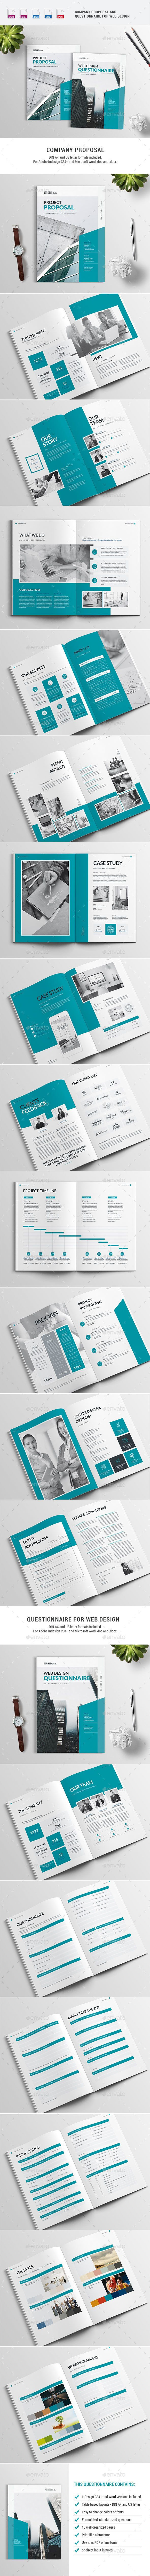 Proposal And Questionnaire Indesign Brochure Templates Travel Template Invoice Design